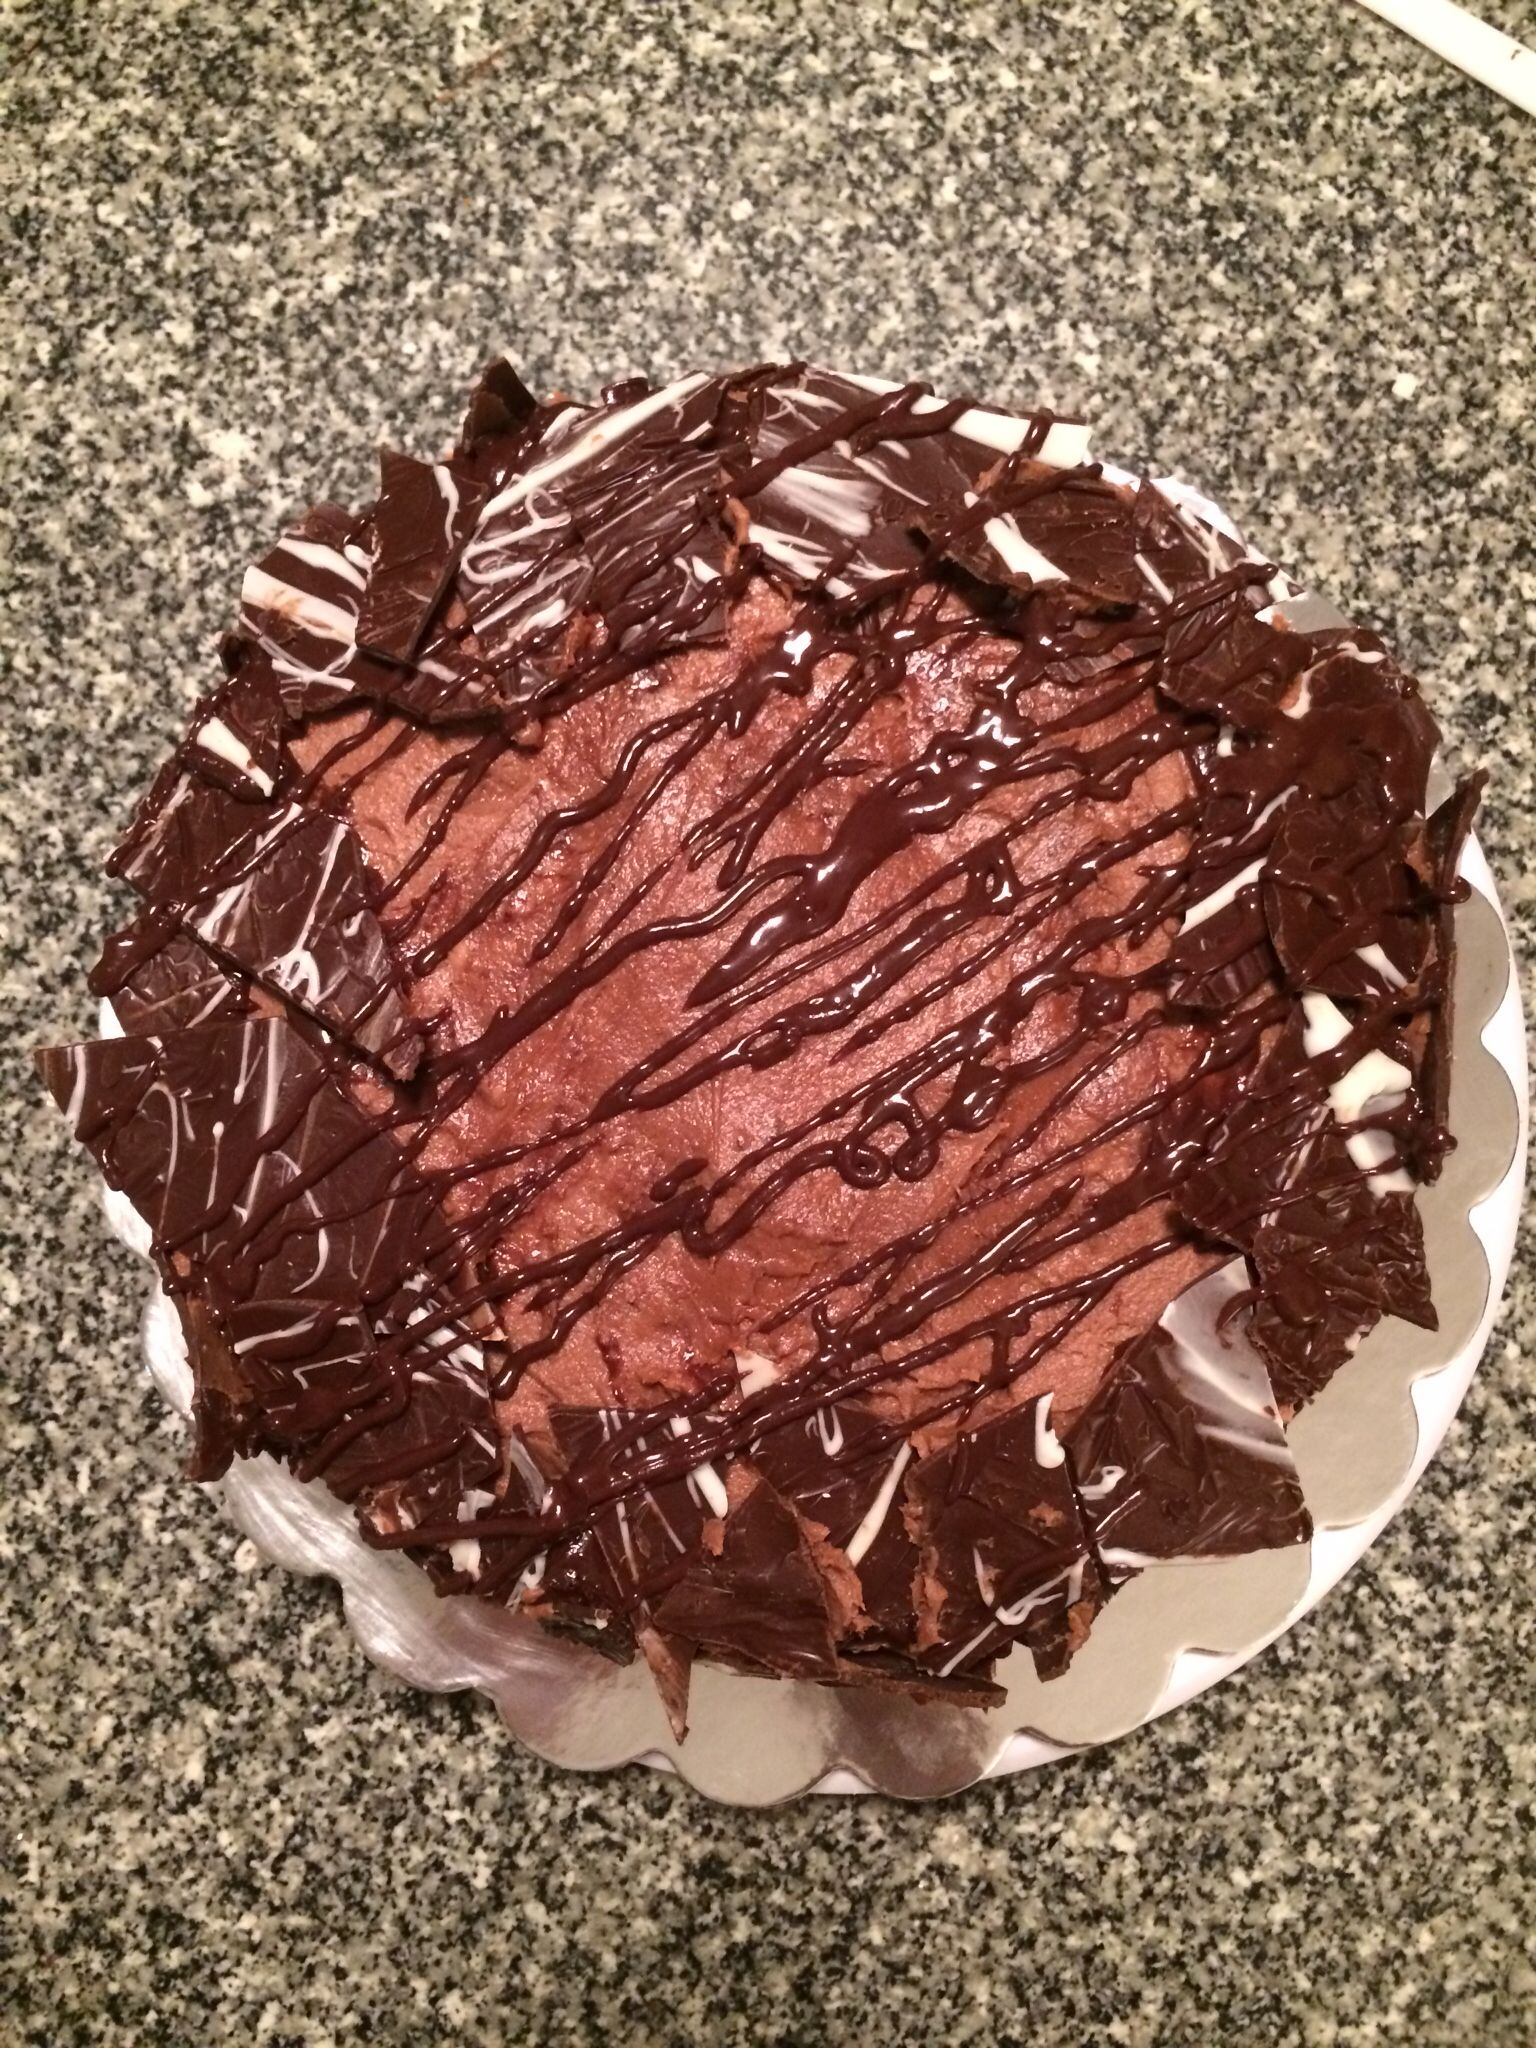 Chocolate explosion cake with #chocolate ganache and chocolate shards!